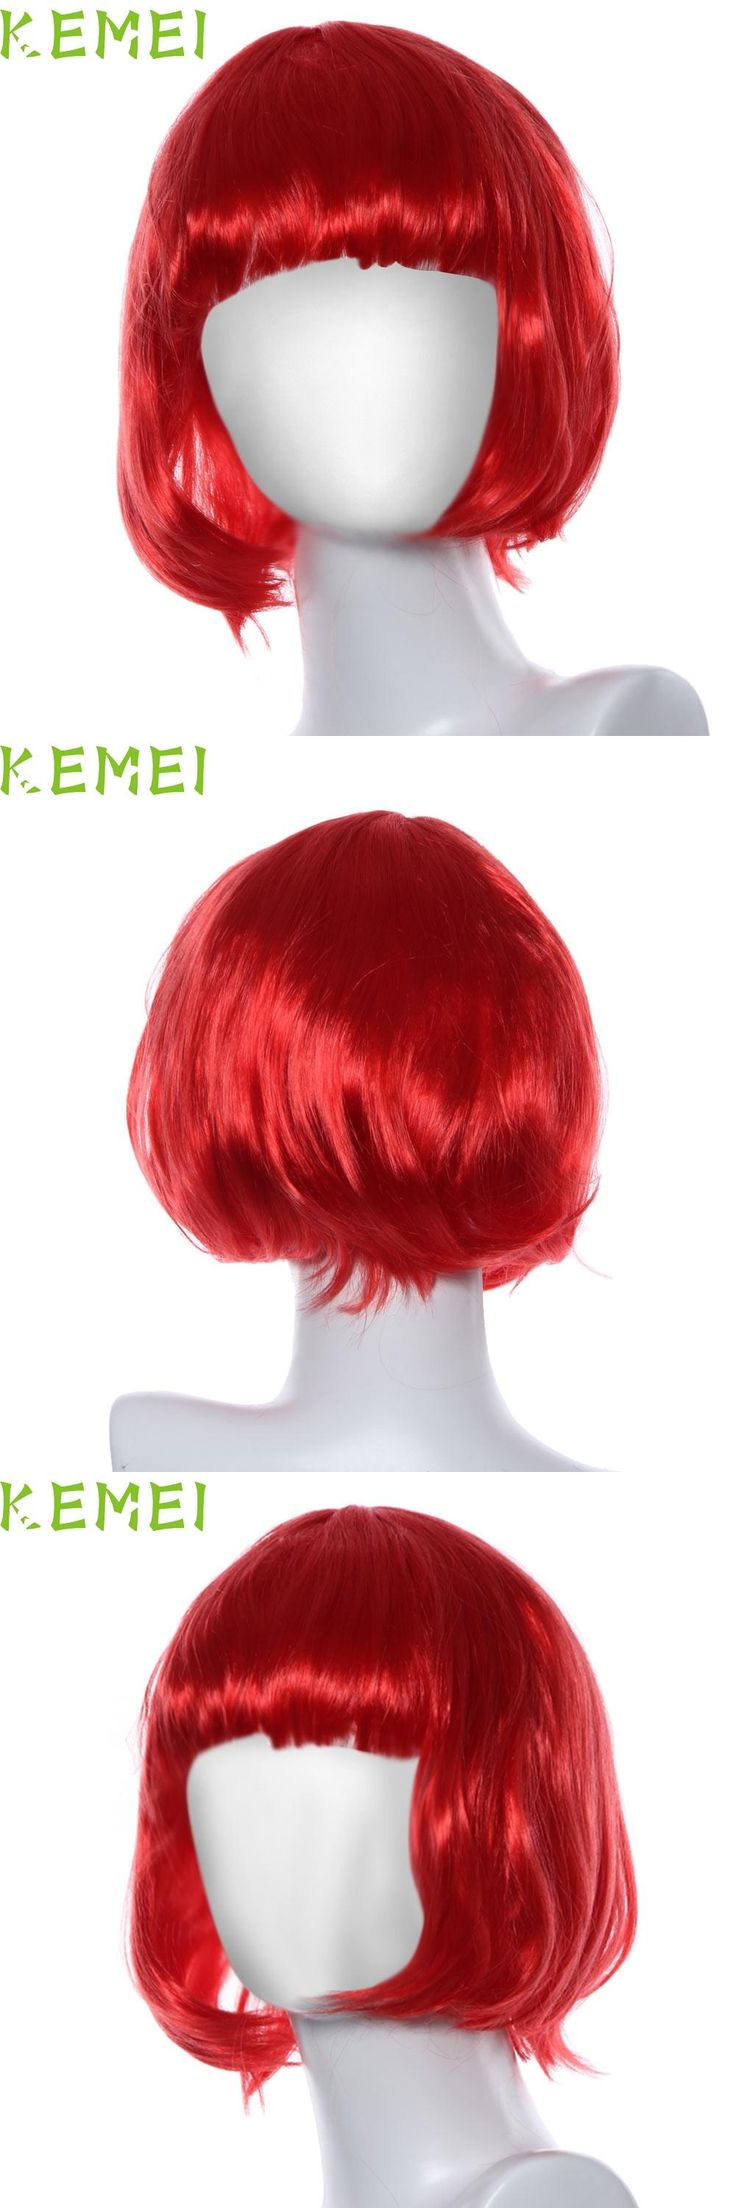 [Visit to Buy] 2017 Hot   Masquerade Small Roll Bang Short Straight Red Hair Wig perruque peluca  Mar6 #Advertisement